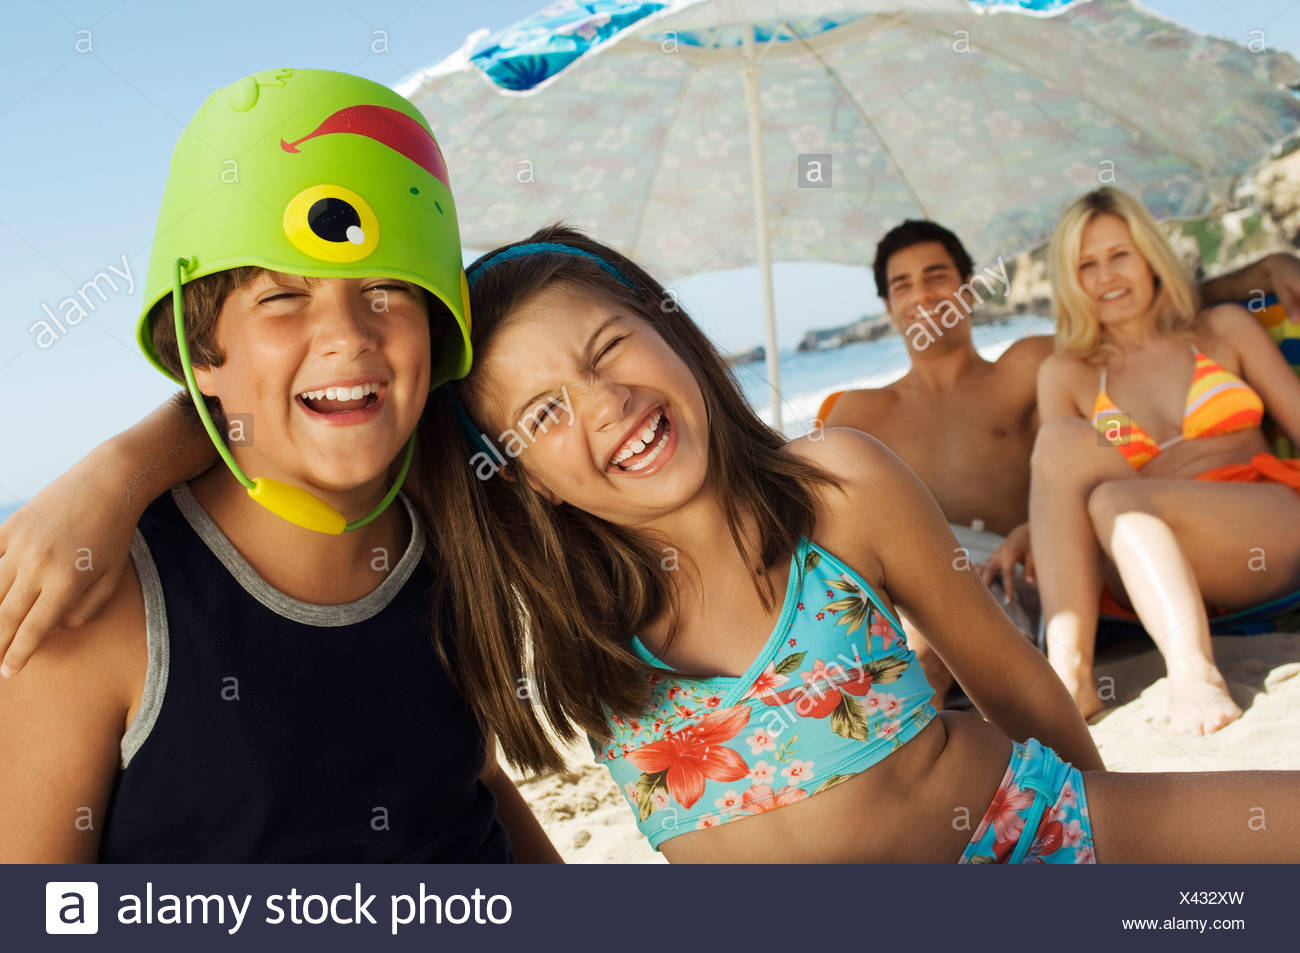 Brother and sister sitting on beach, arm around, boy with bucket on head - Stock Image